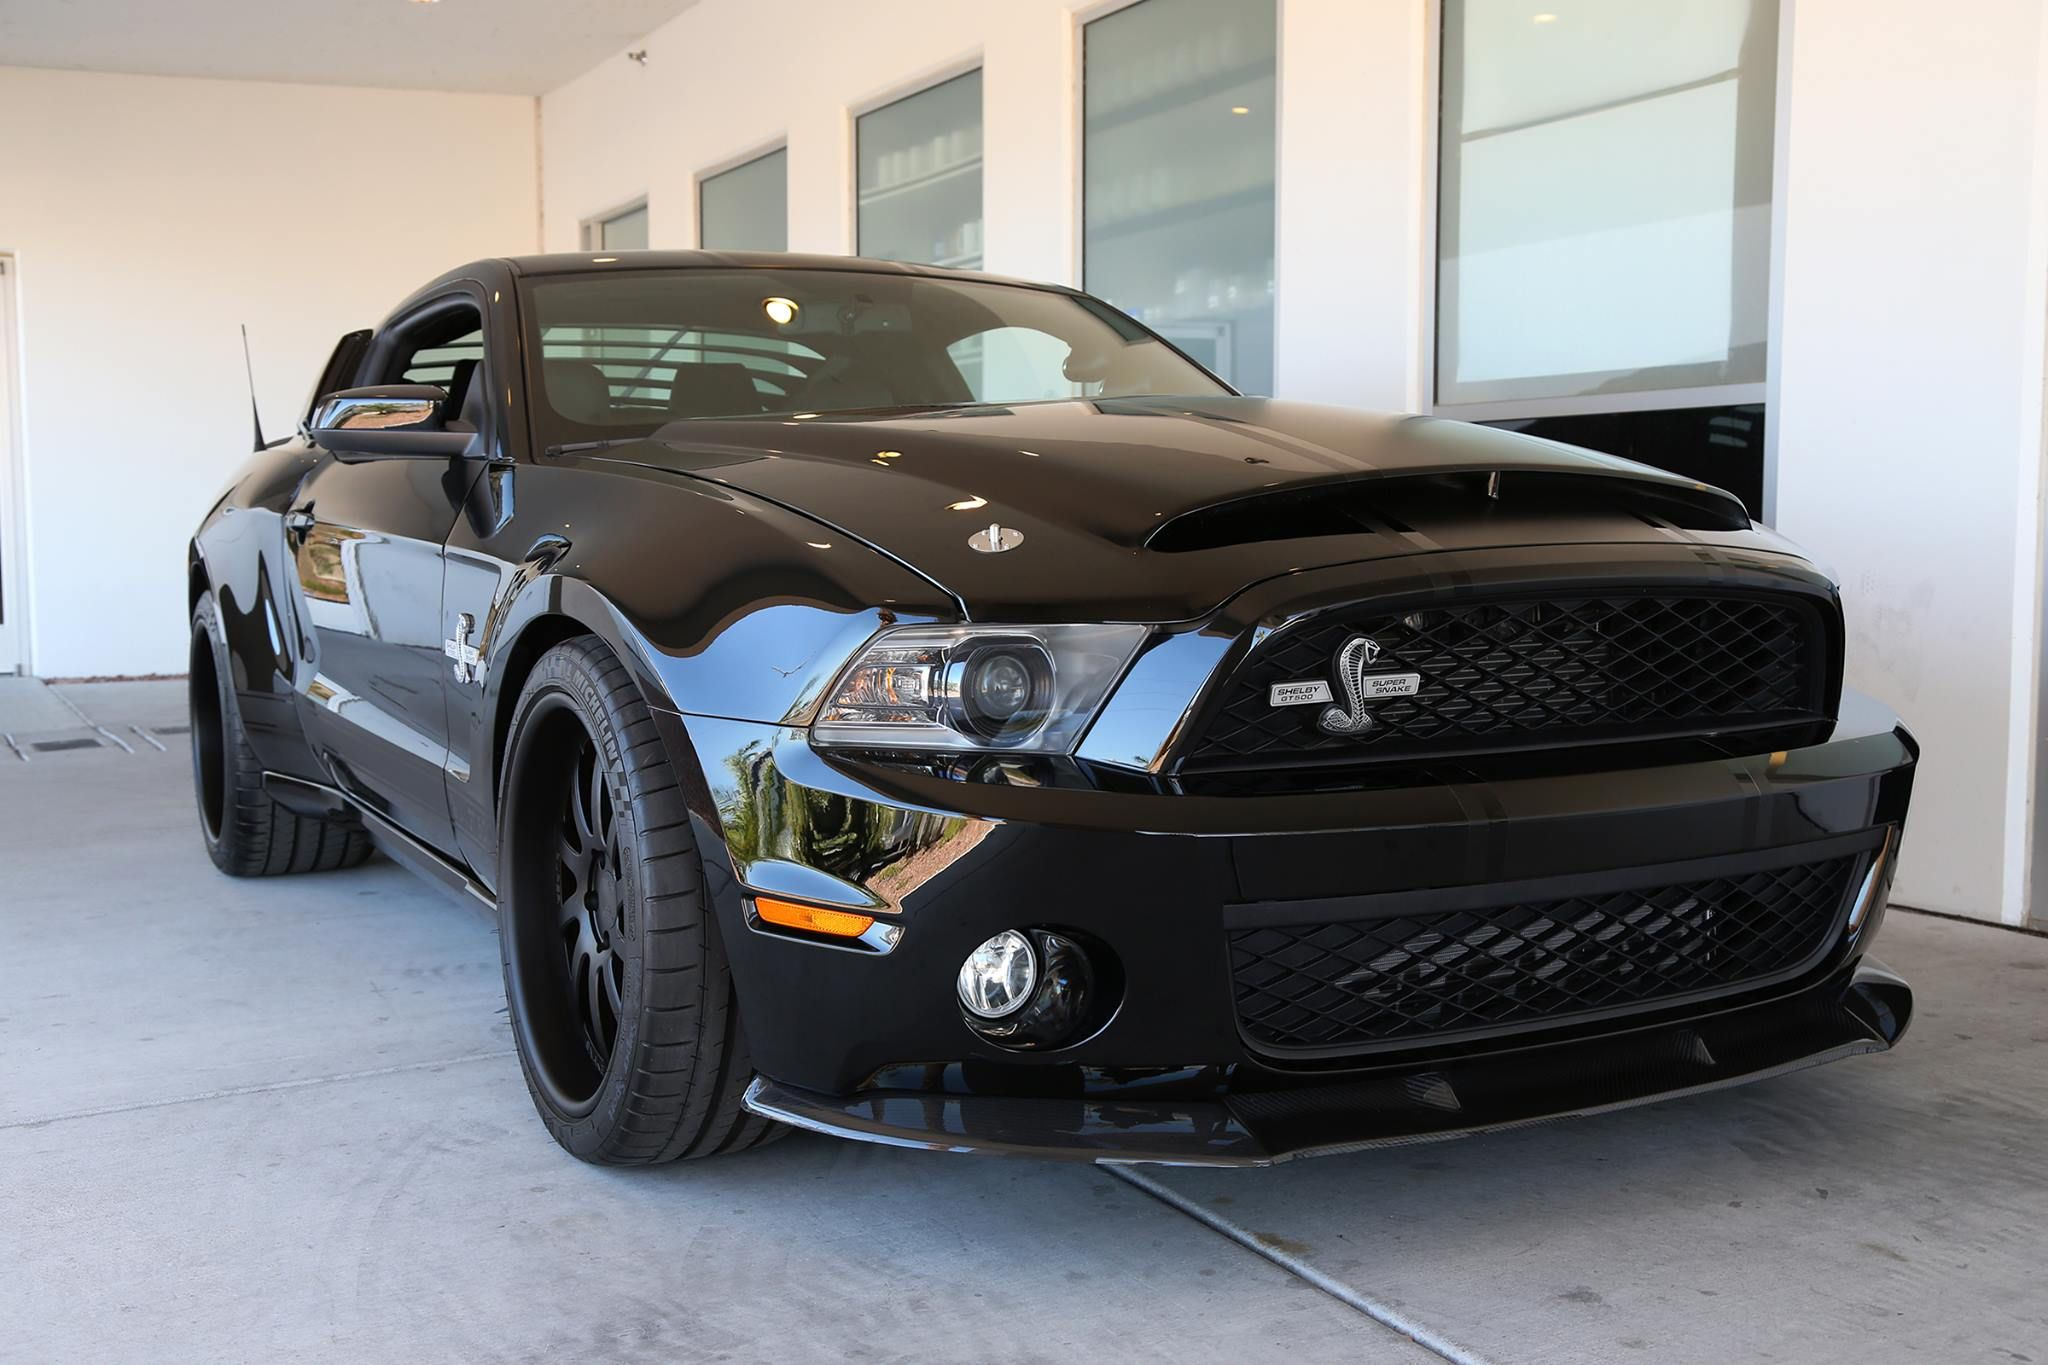 2011 Shelby GT500 Super Snake with the full wide-body package...